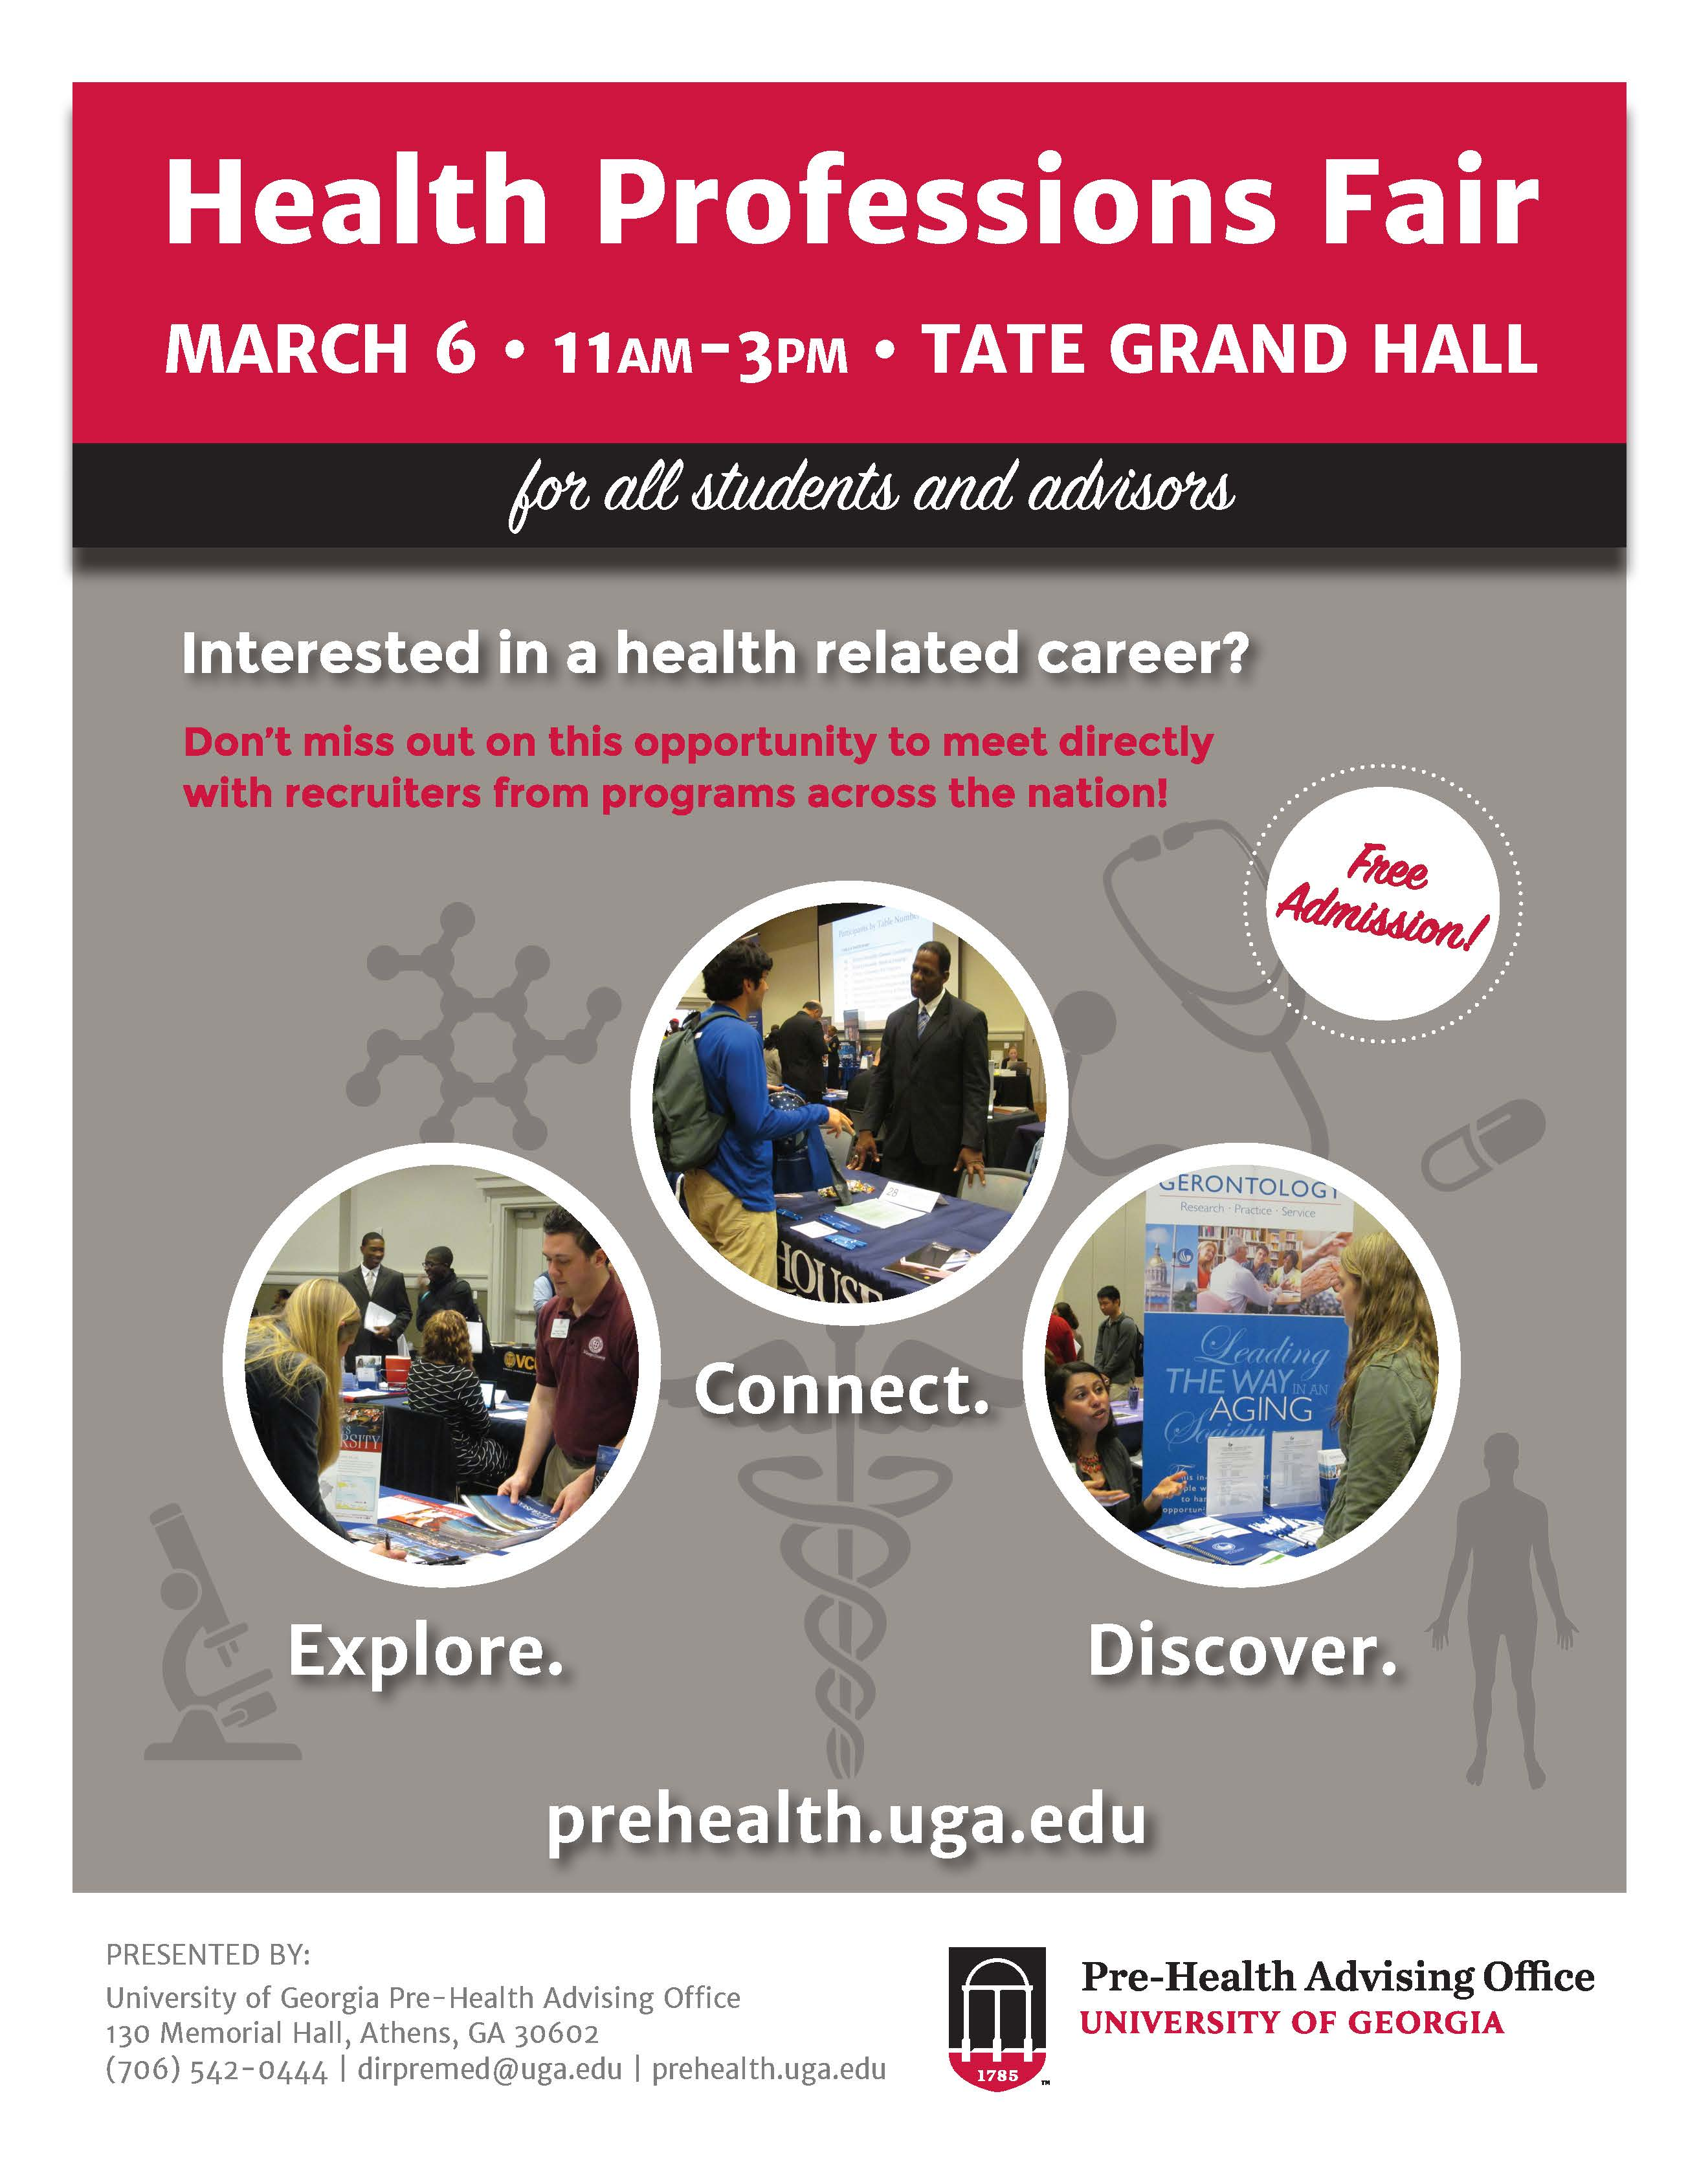 Health Professions Fair 2018 | Pre-Health Advising Office